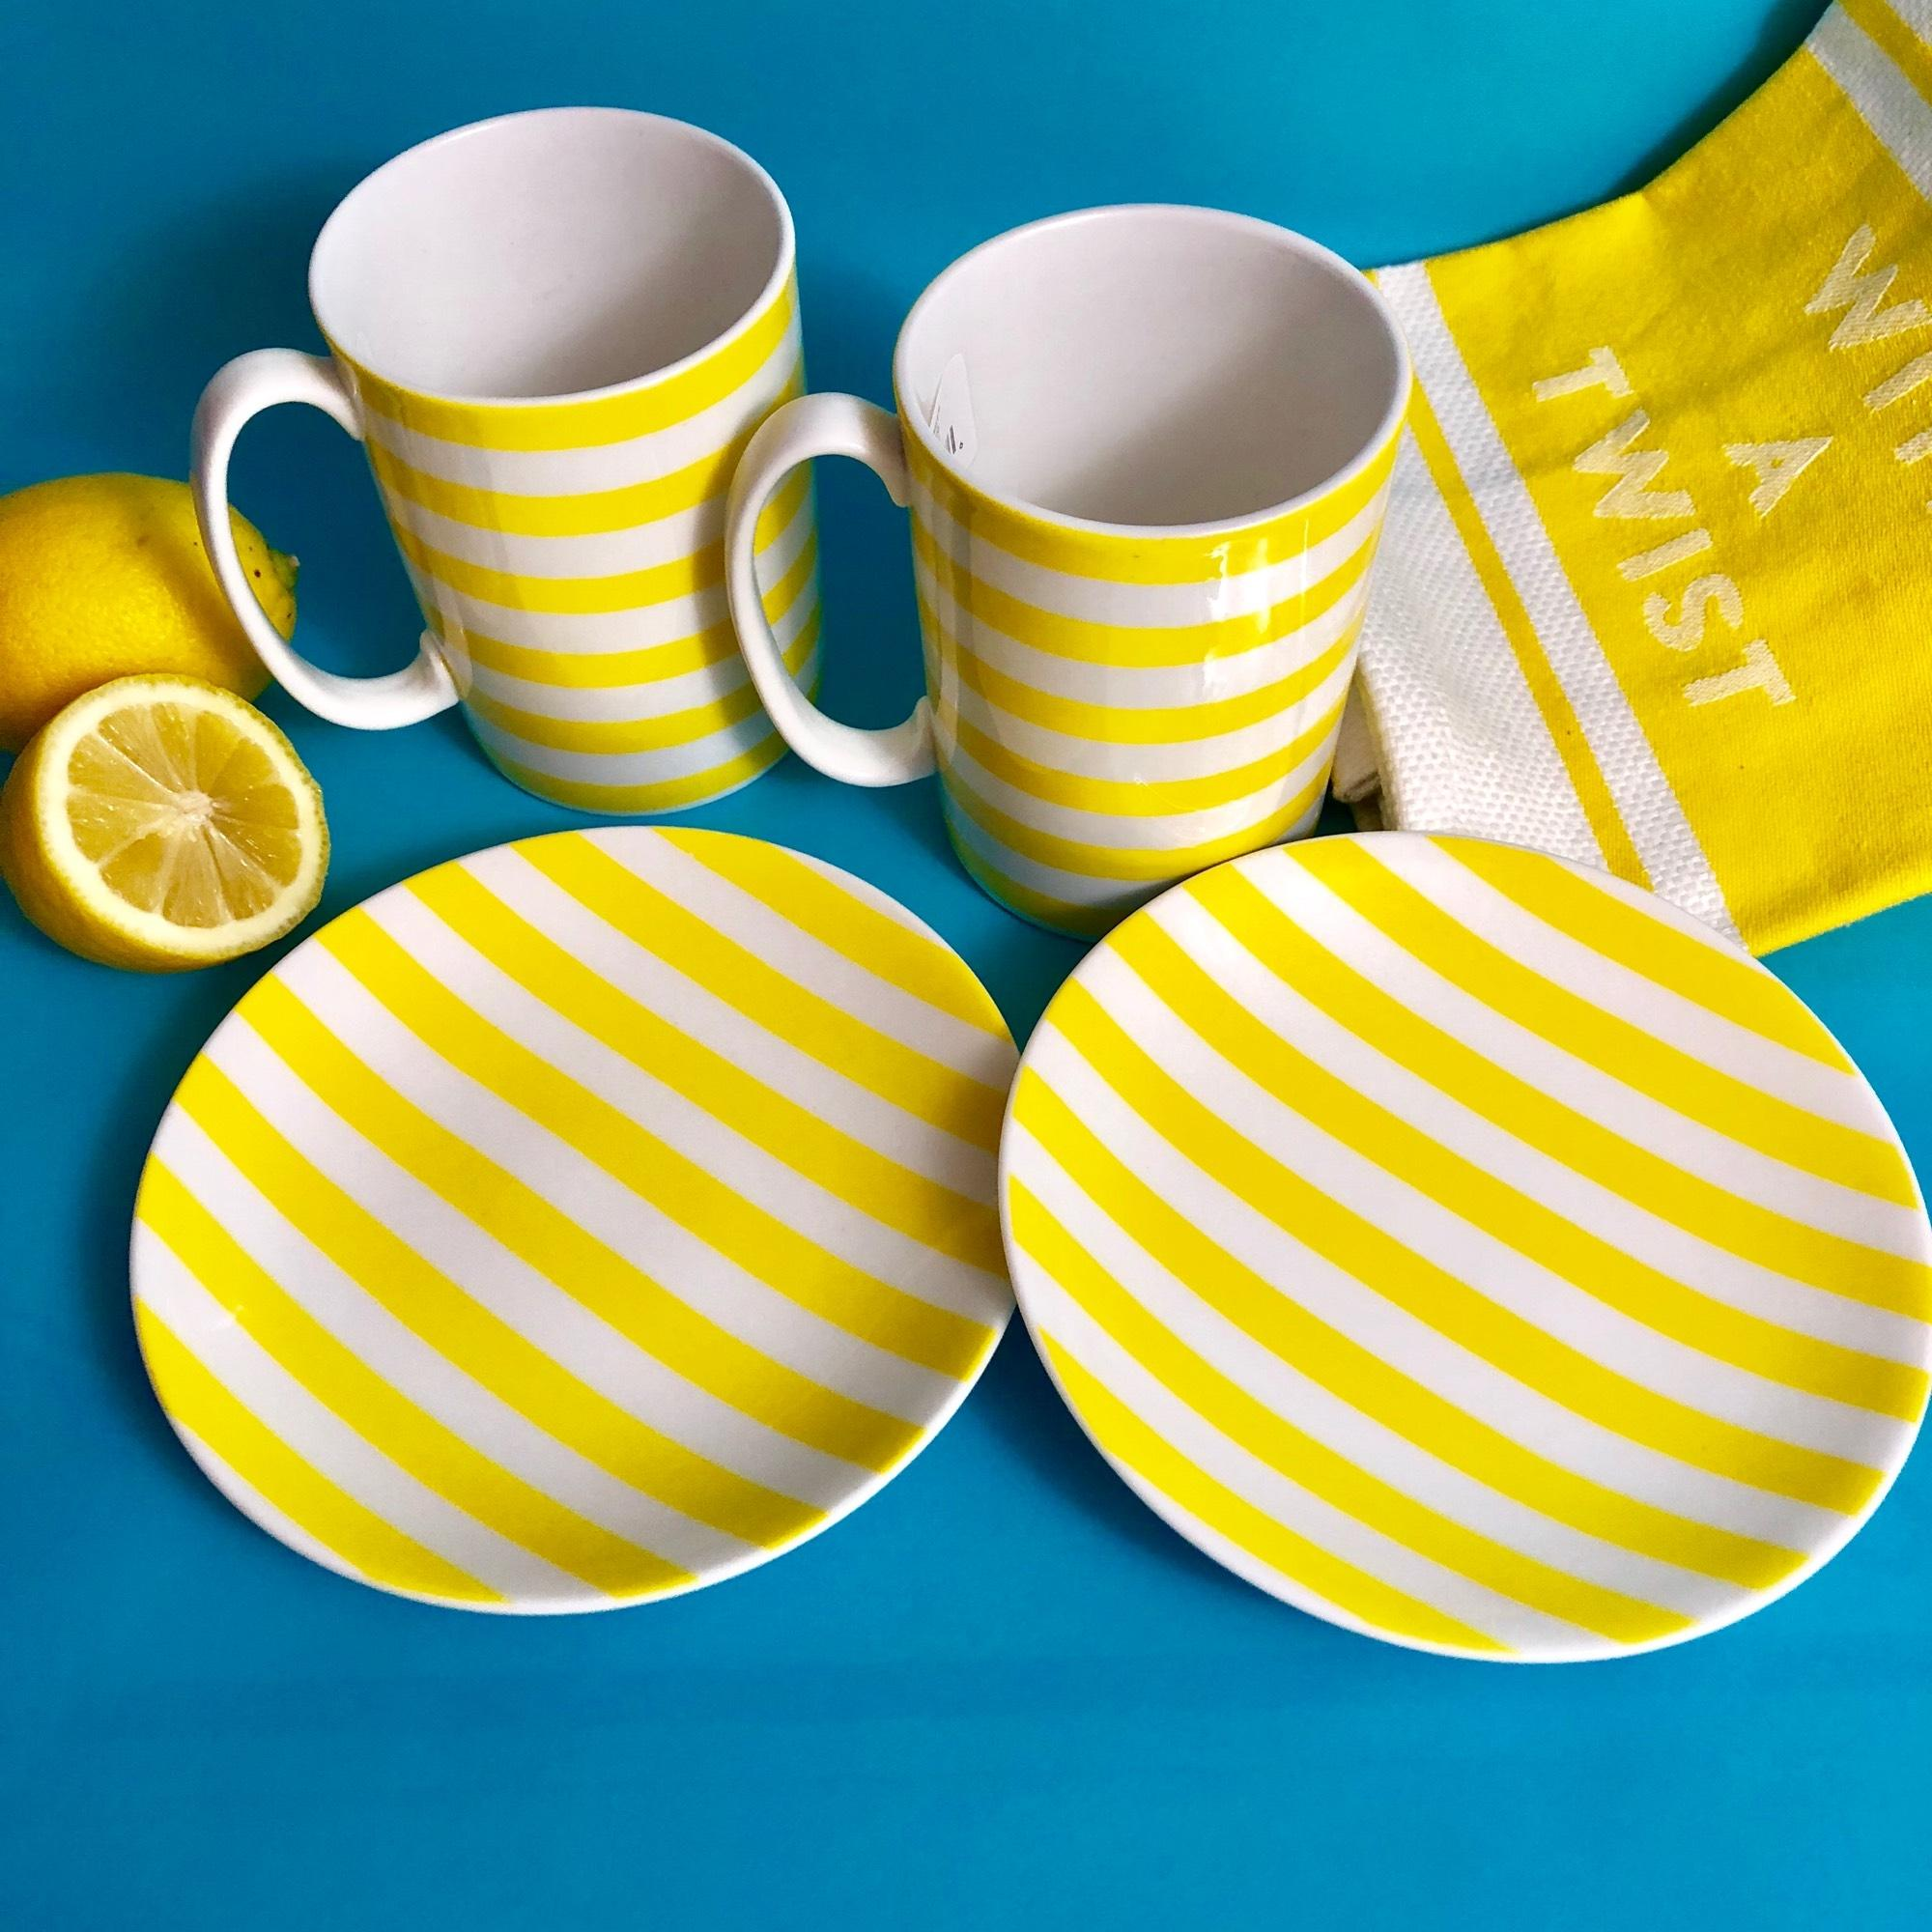 123456 & Kate Spade Yellow and Blue \u201cwith A Twist\u201d Mugs Tidbit Plates Fine ...